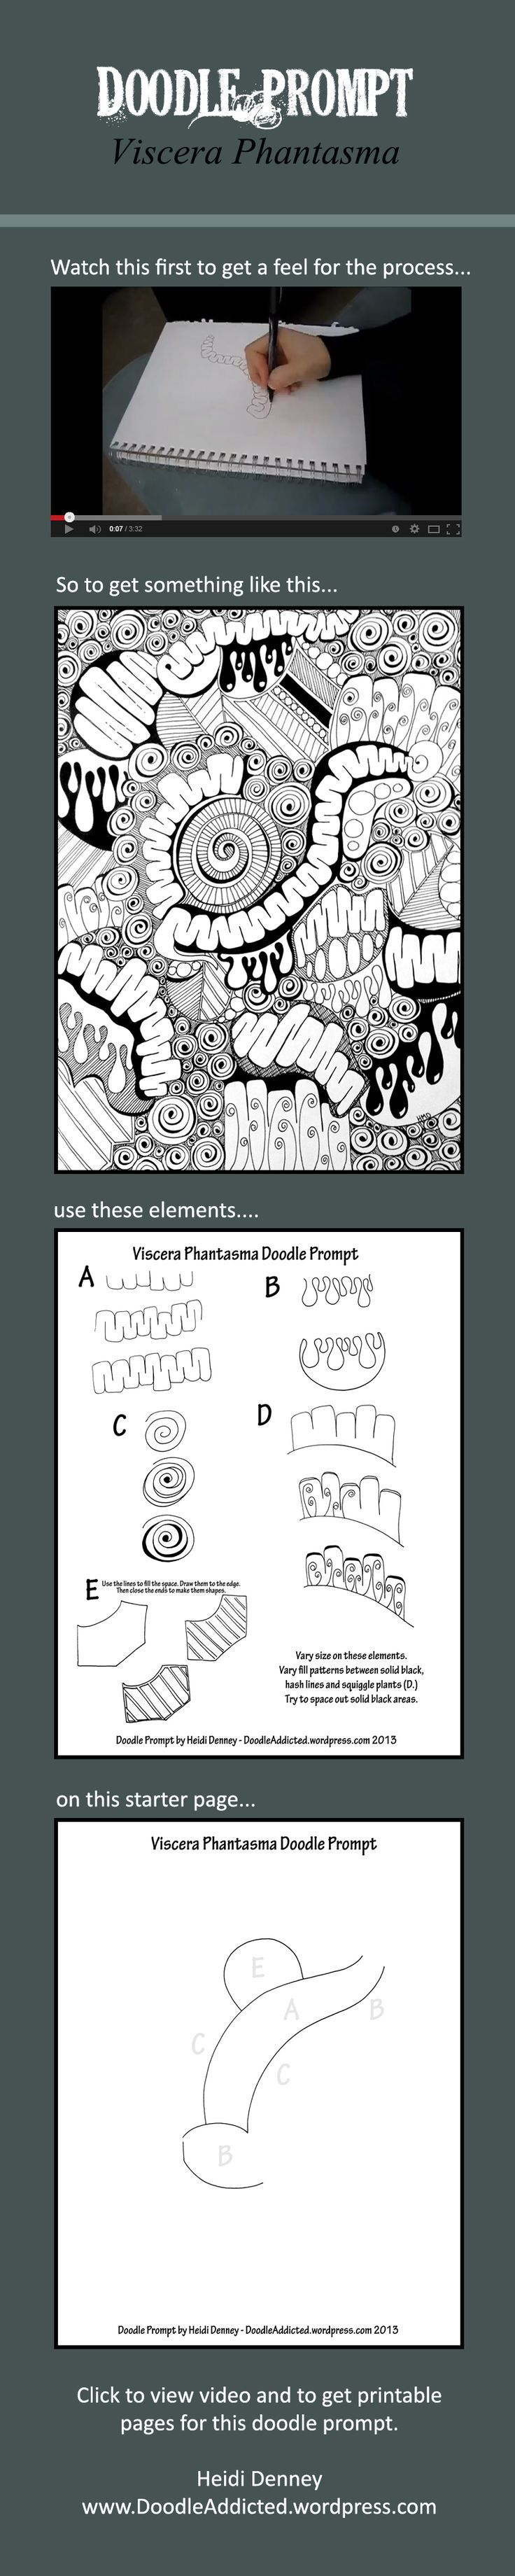 Click to view video and full tutorial. Doodle prompt by Heidi Denney. Sharpie art Tangle